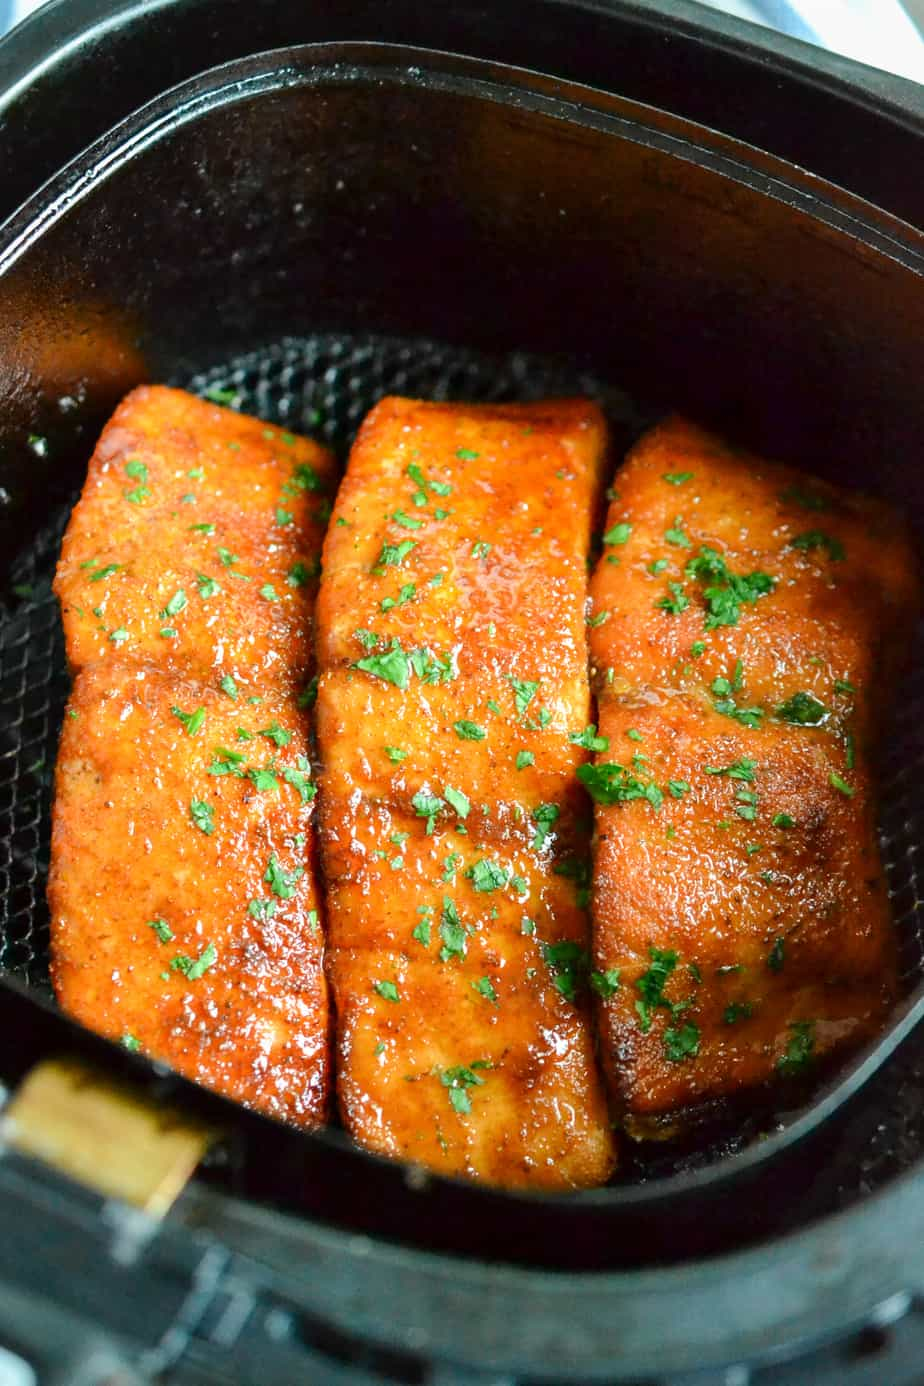 Salmon filets cooked in an air fryer.